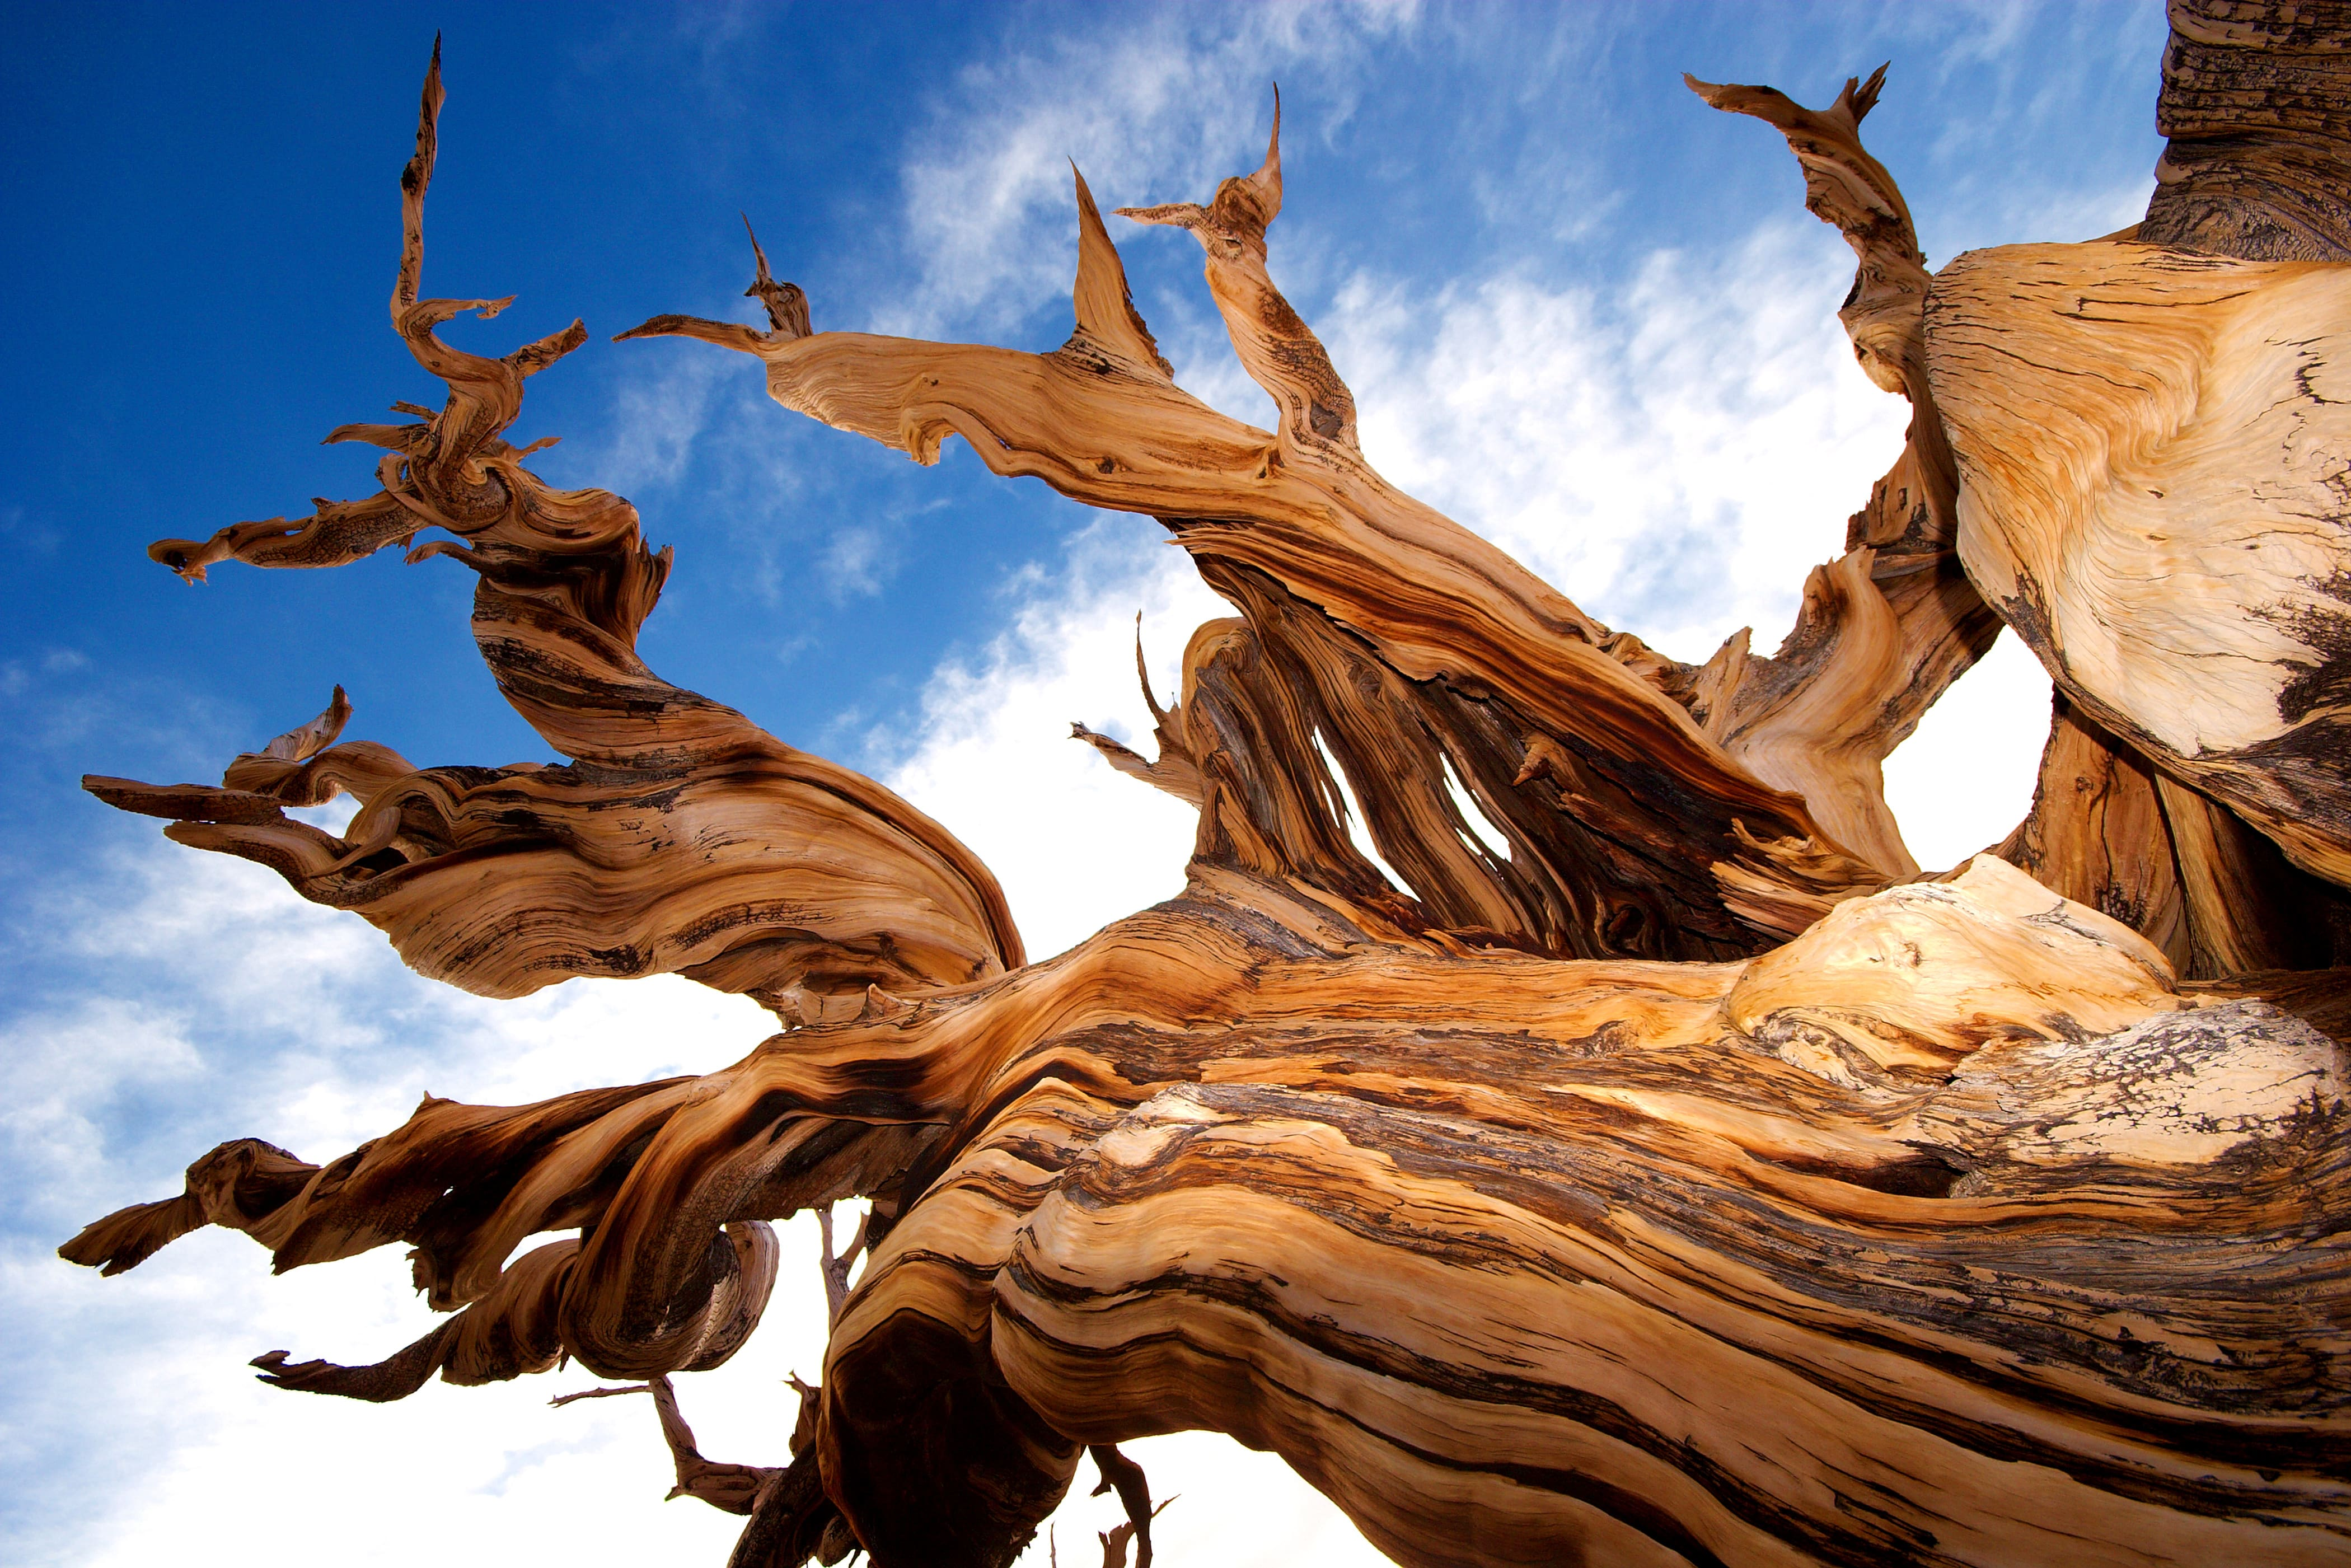 extremely old and impressive bristlecone pine tree naked trunk against blue sky